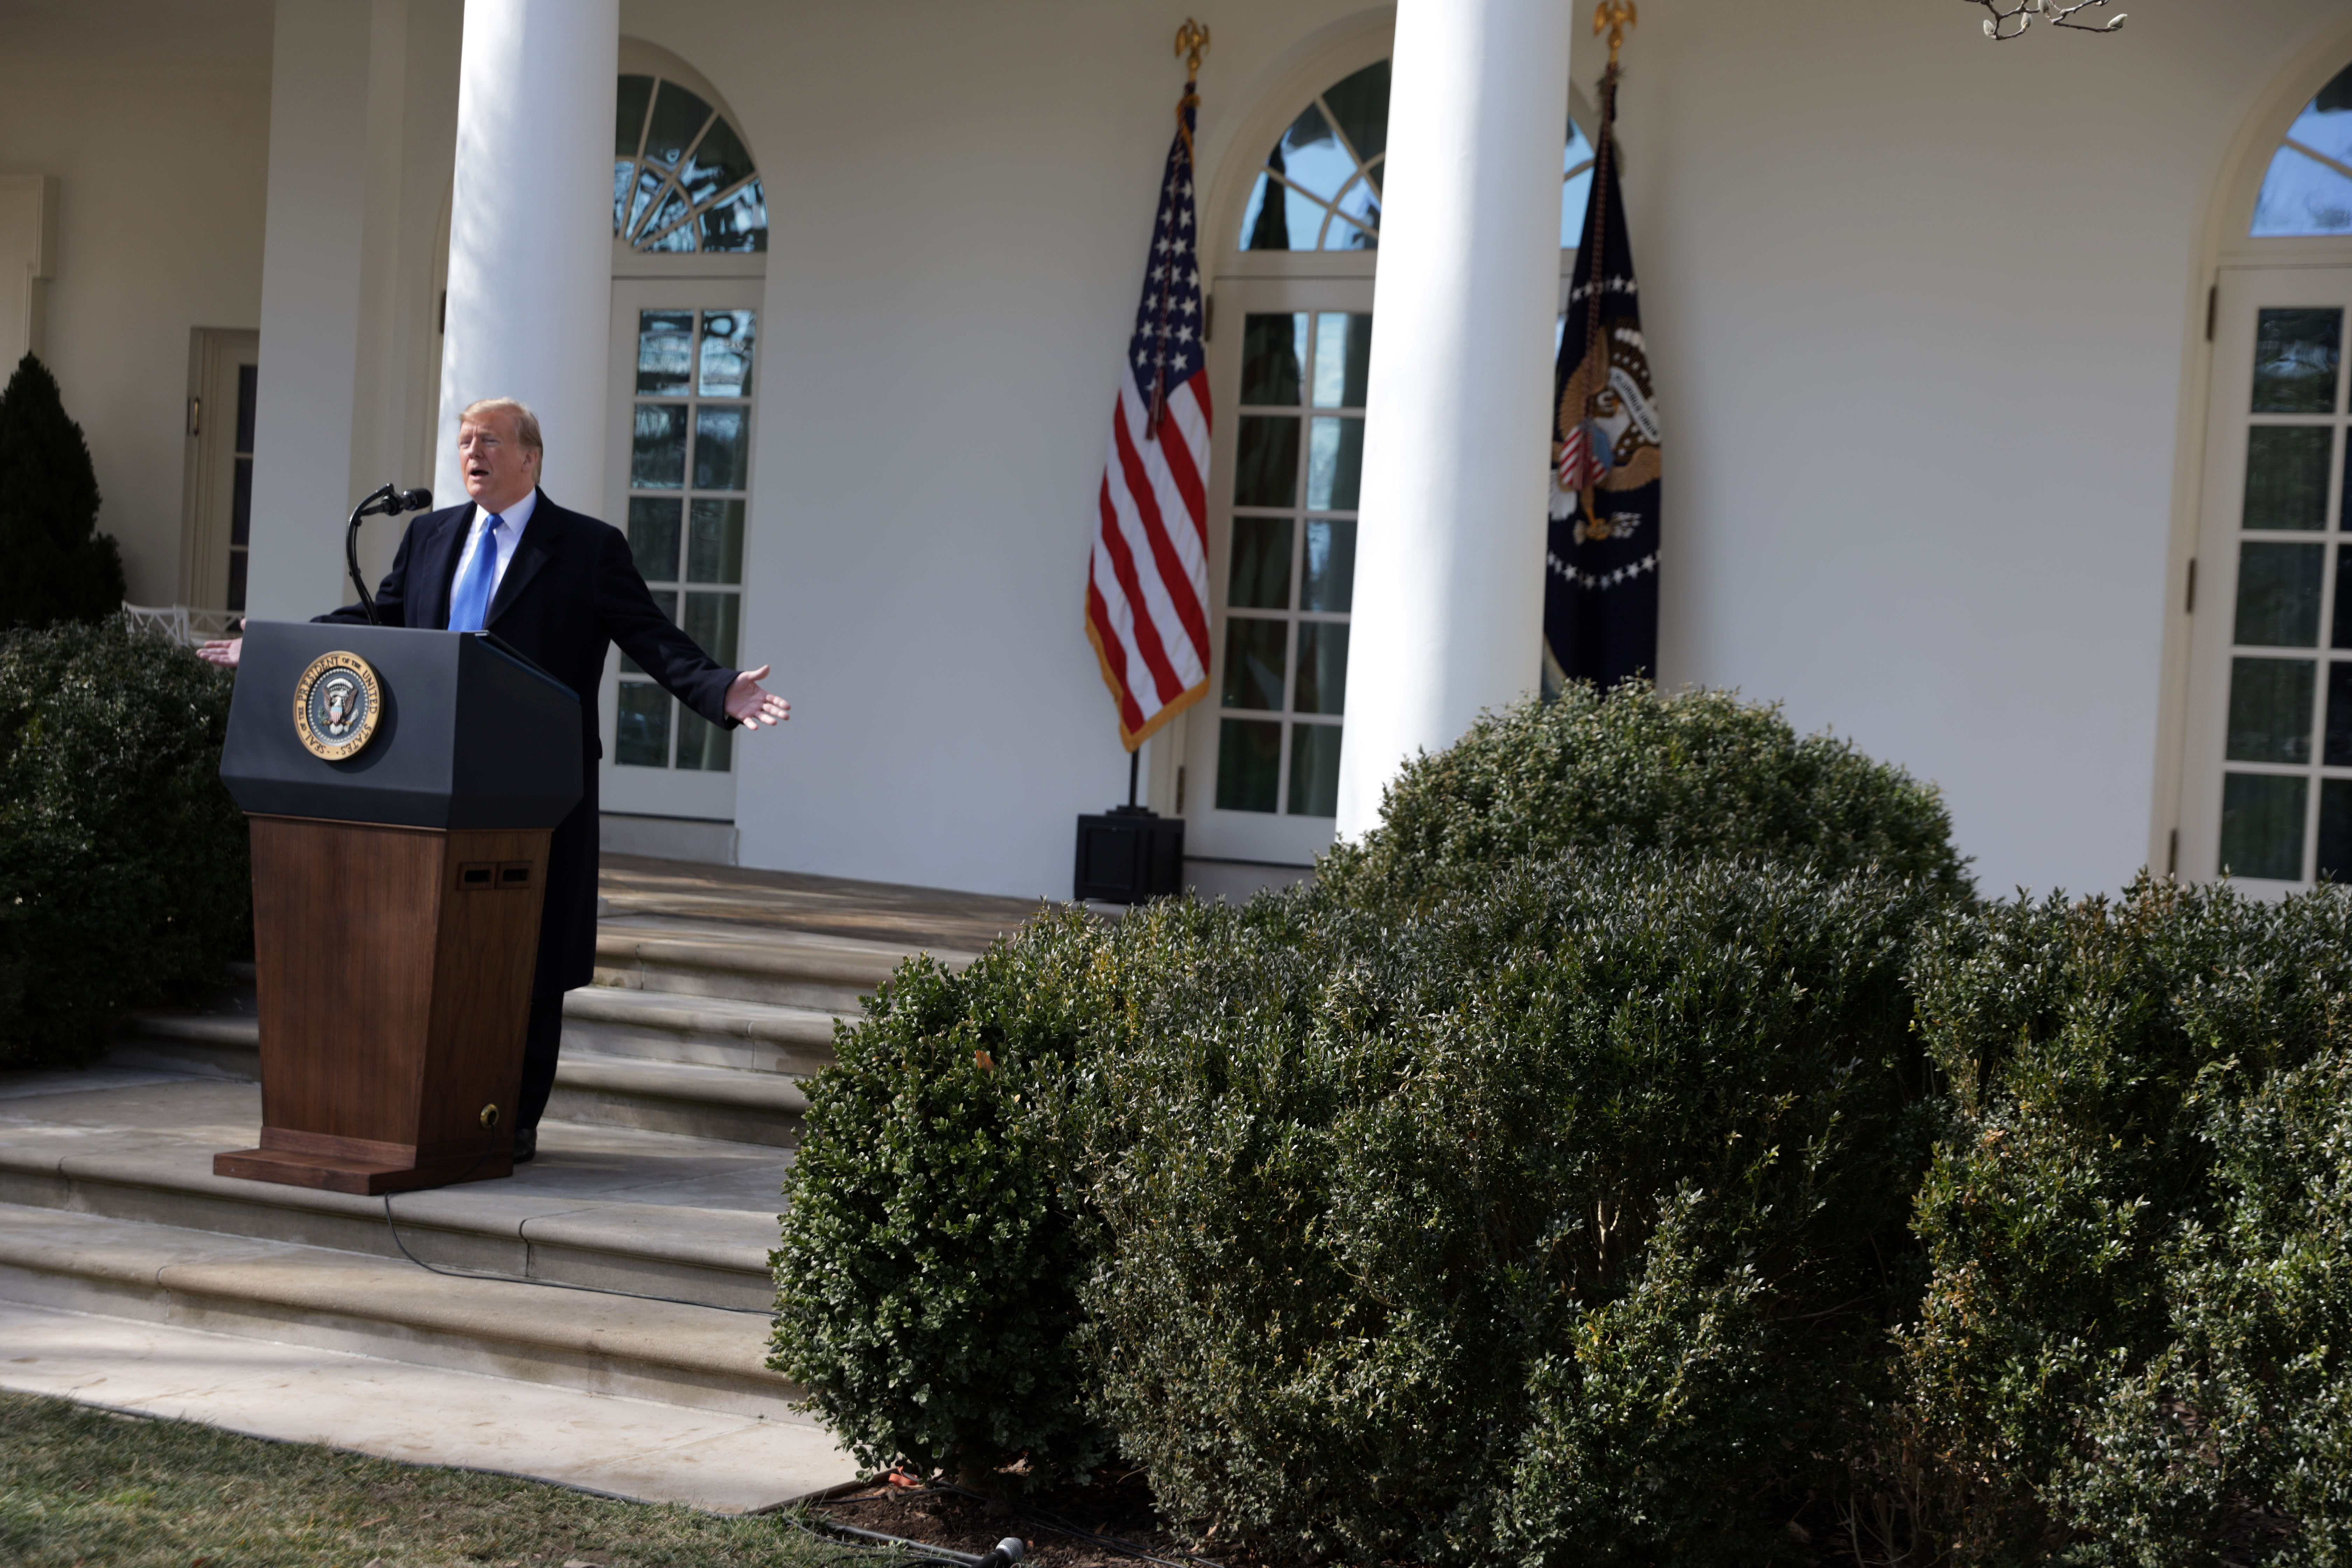 U.S. President Donald Trump speaks on border security during a Rose Garden event at the White House February 15, 2019 in Washington, DC. (Photo by Alex Wong/Getty Images)